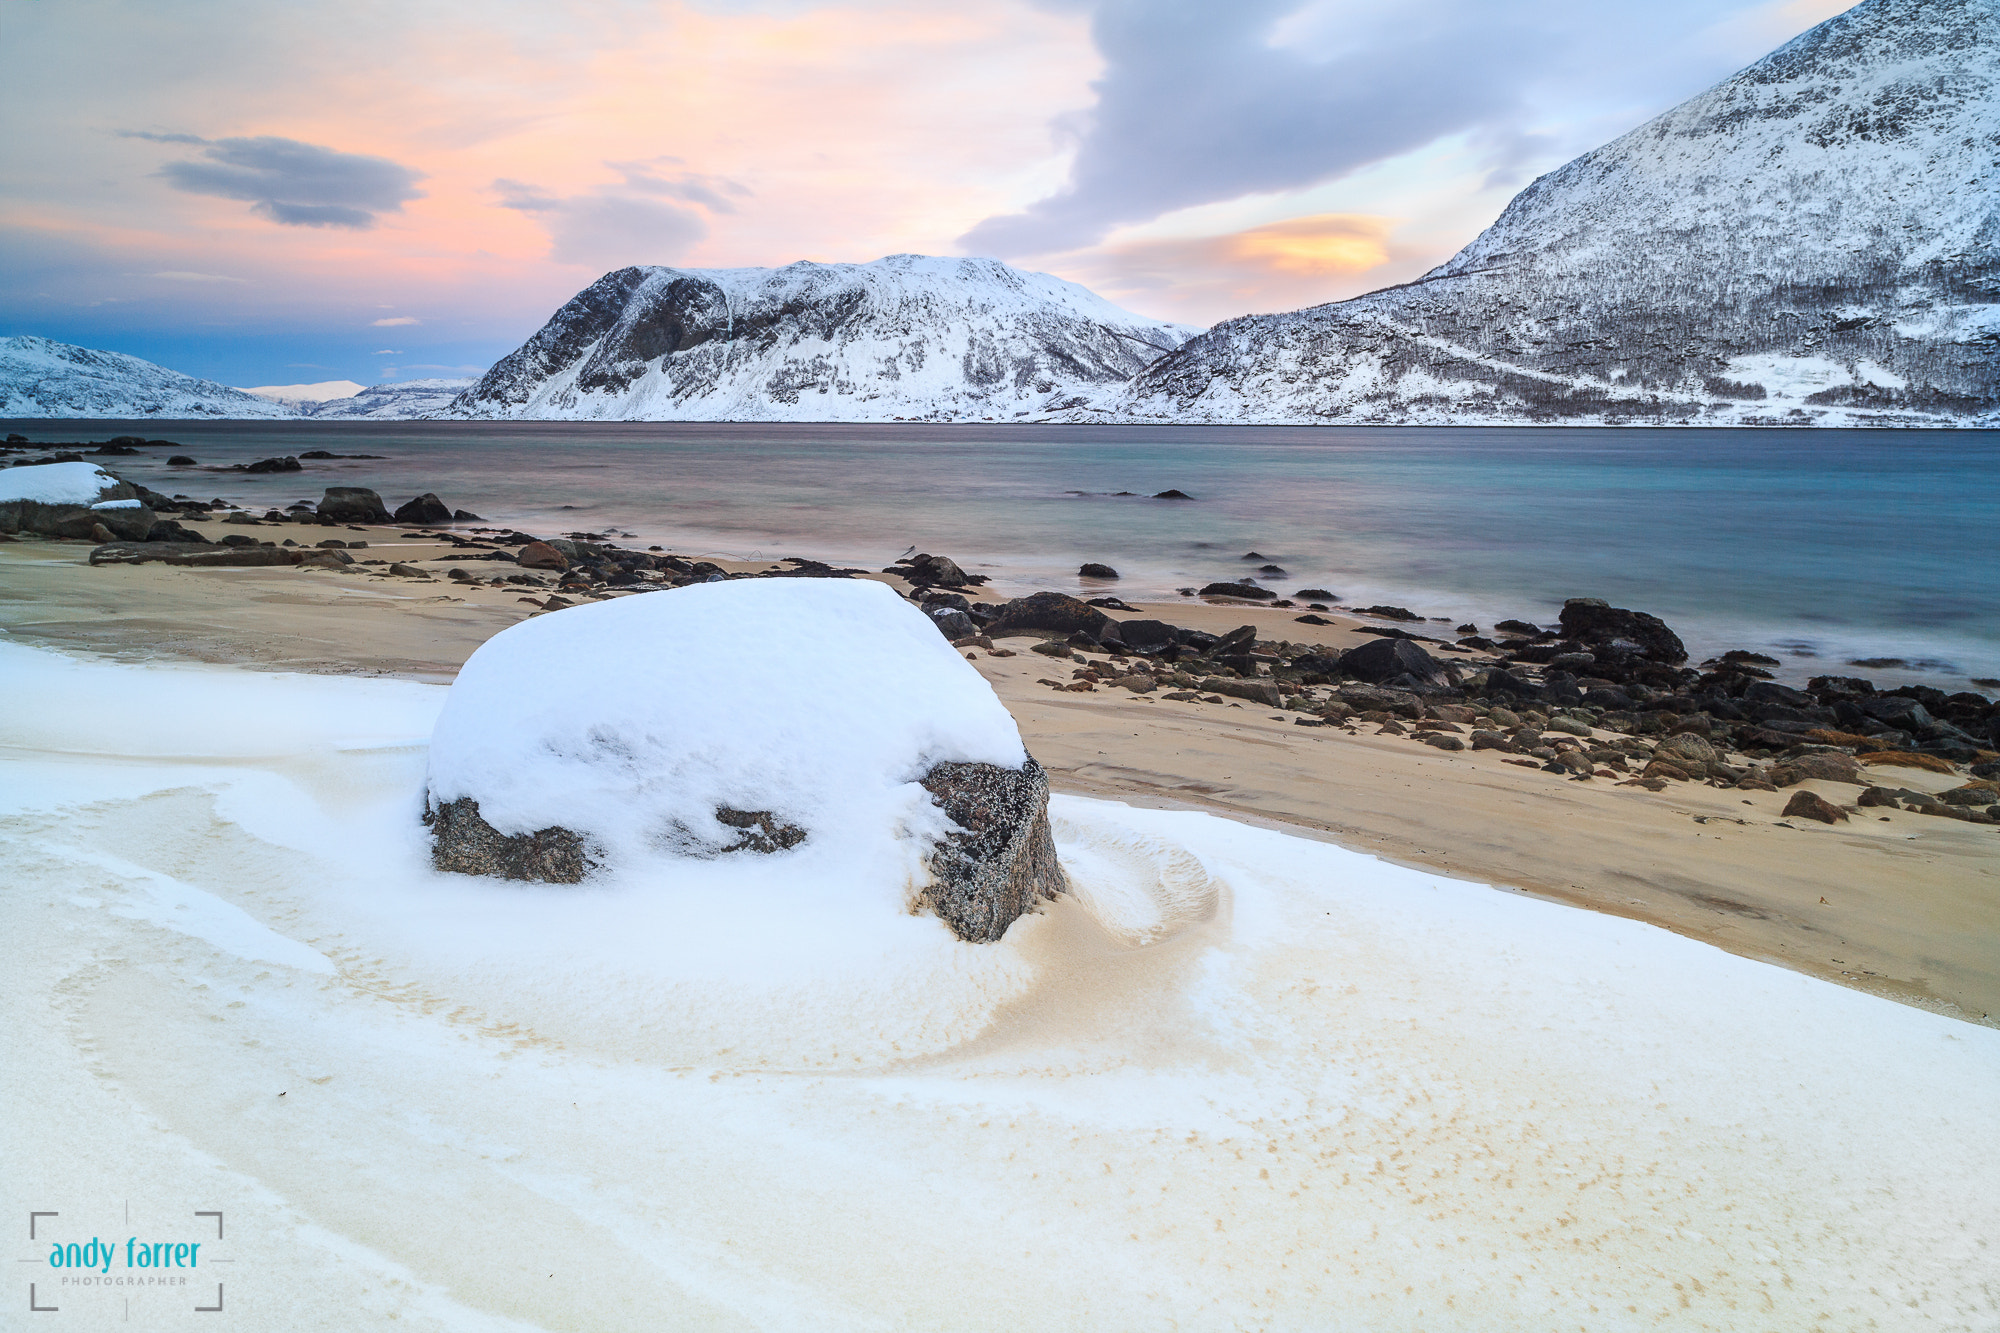 Photograph Snowy Rock by Andy Farrer on 500px